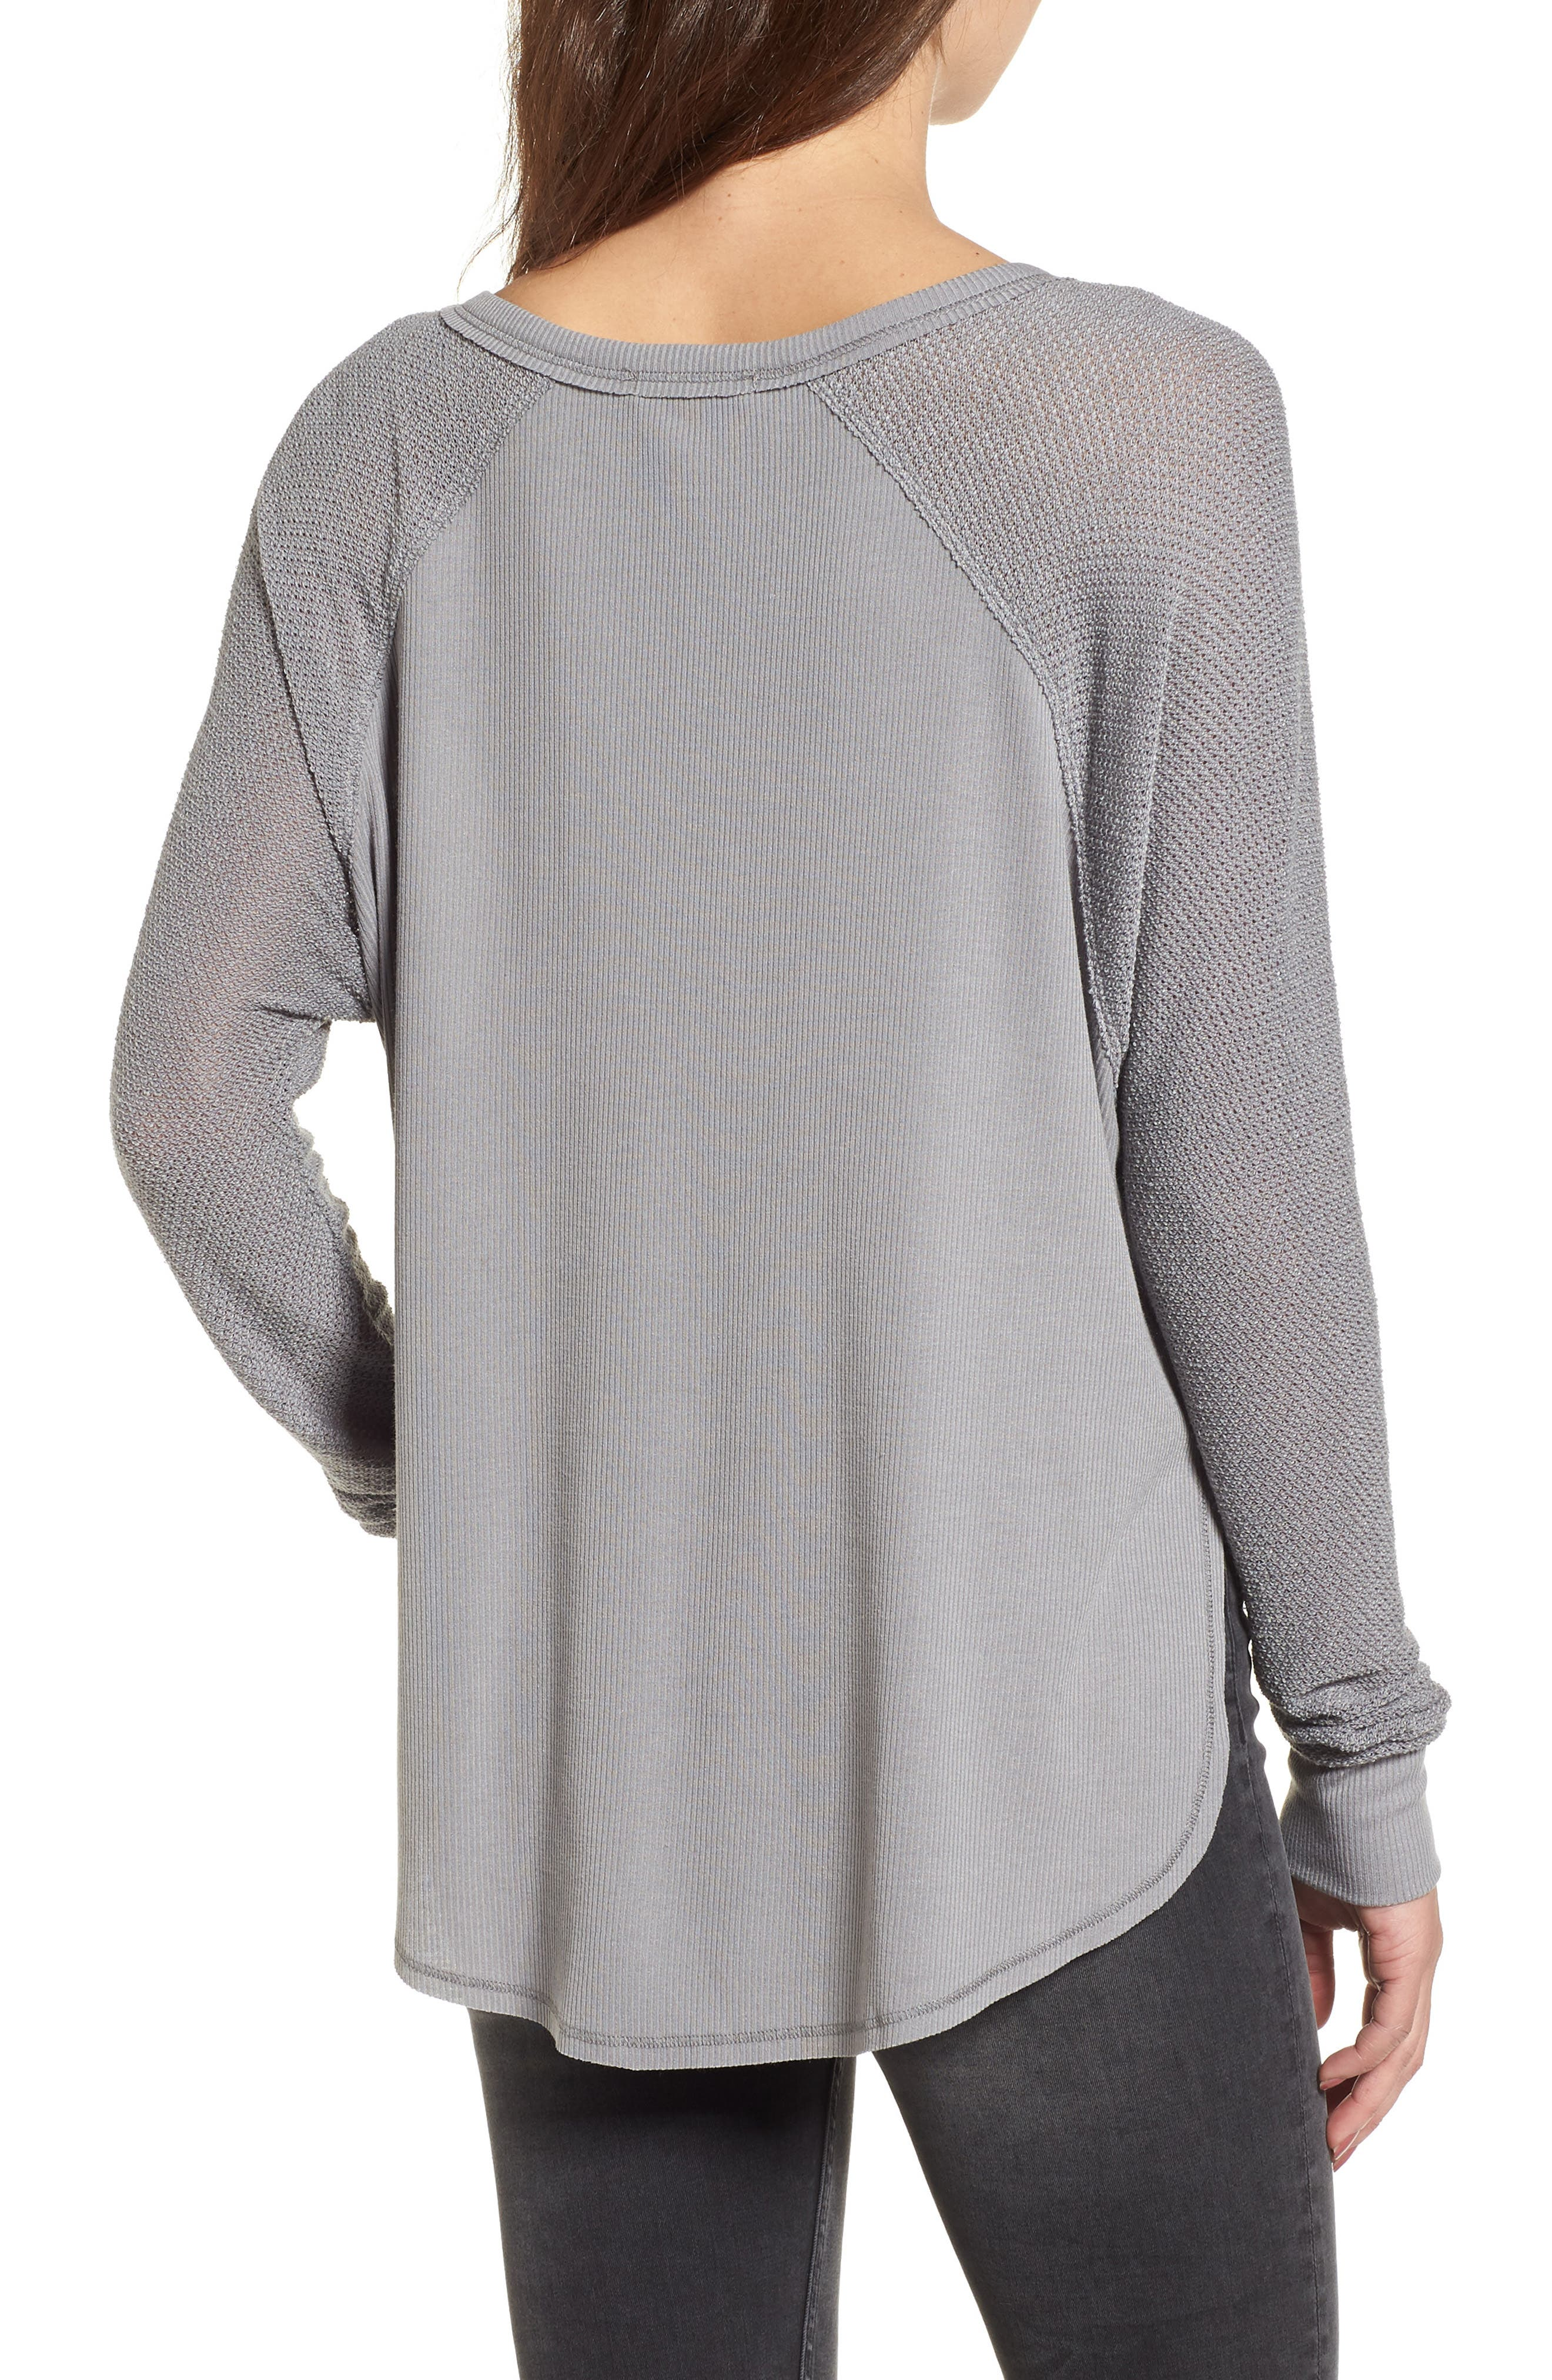 Contrast Sleeve Thermal Top,                             Alternate thumbnail 2, color,                             050